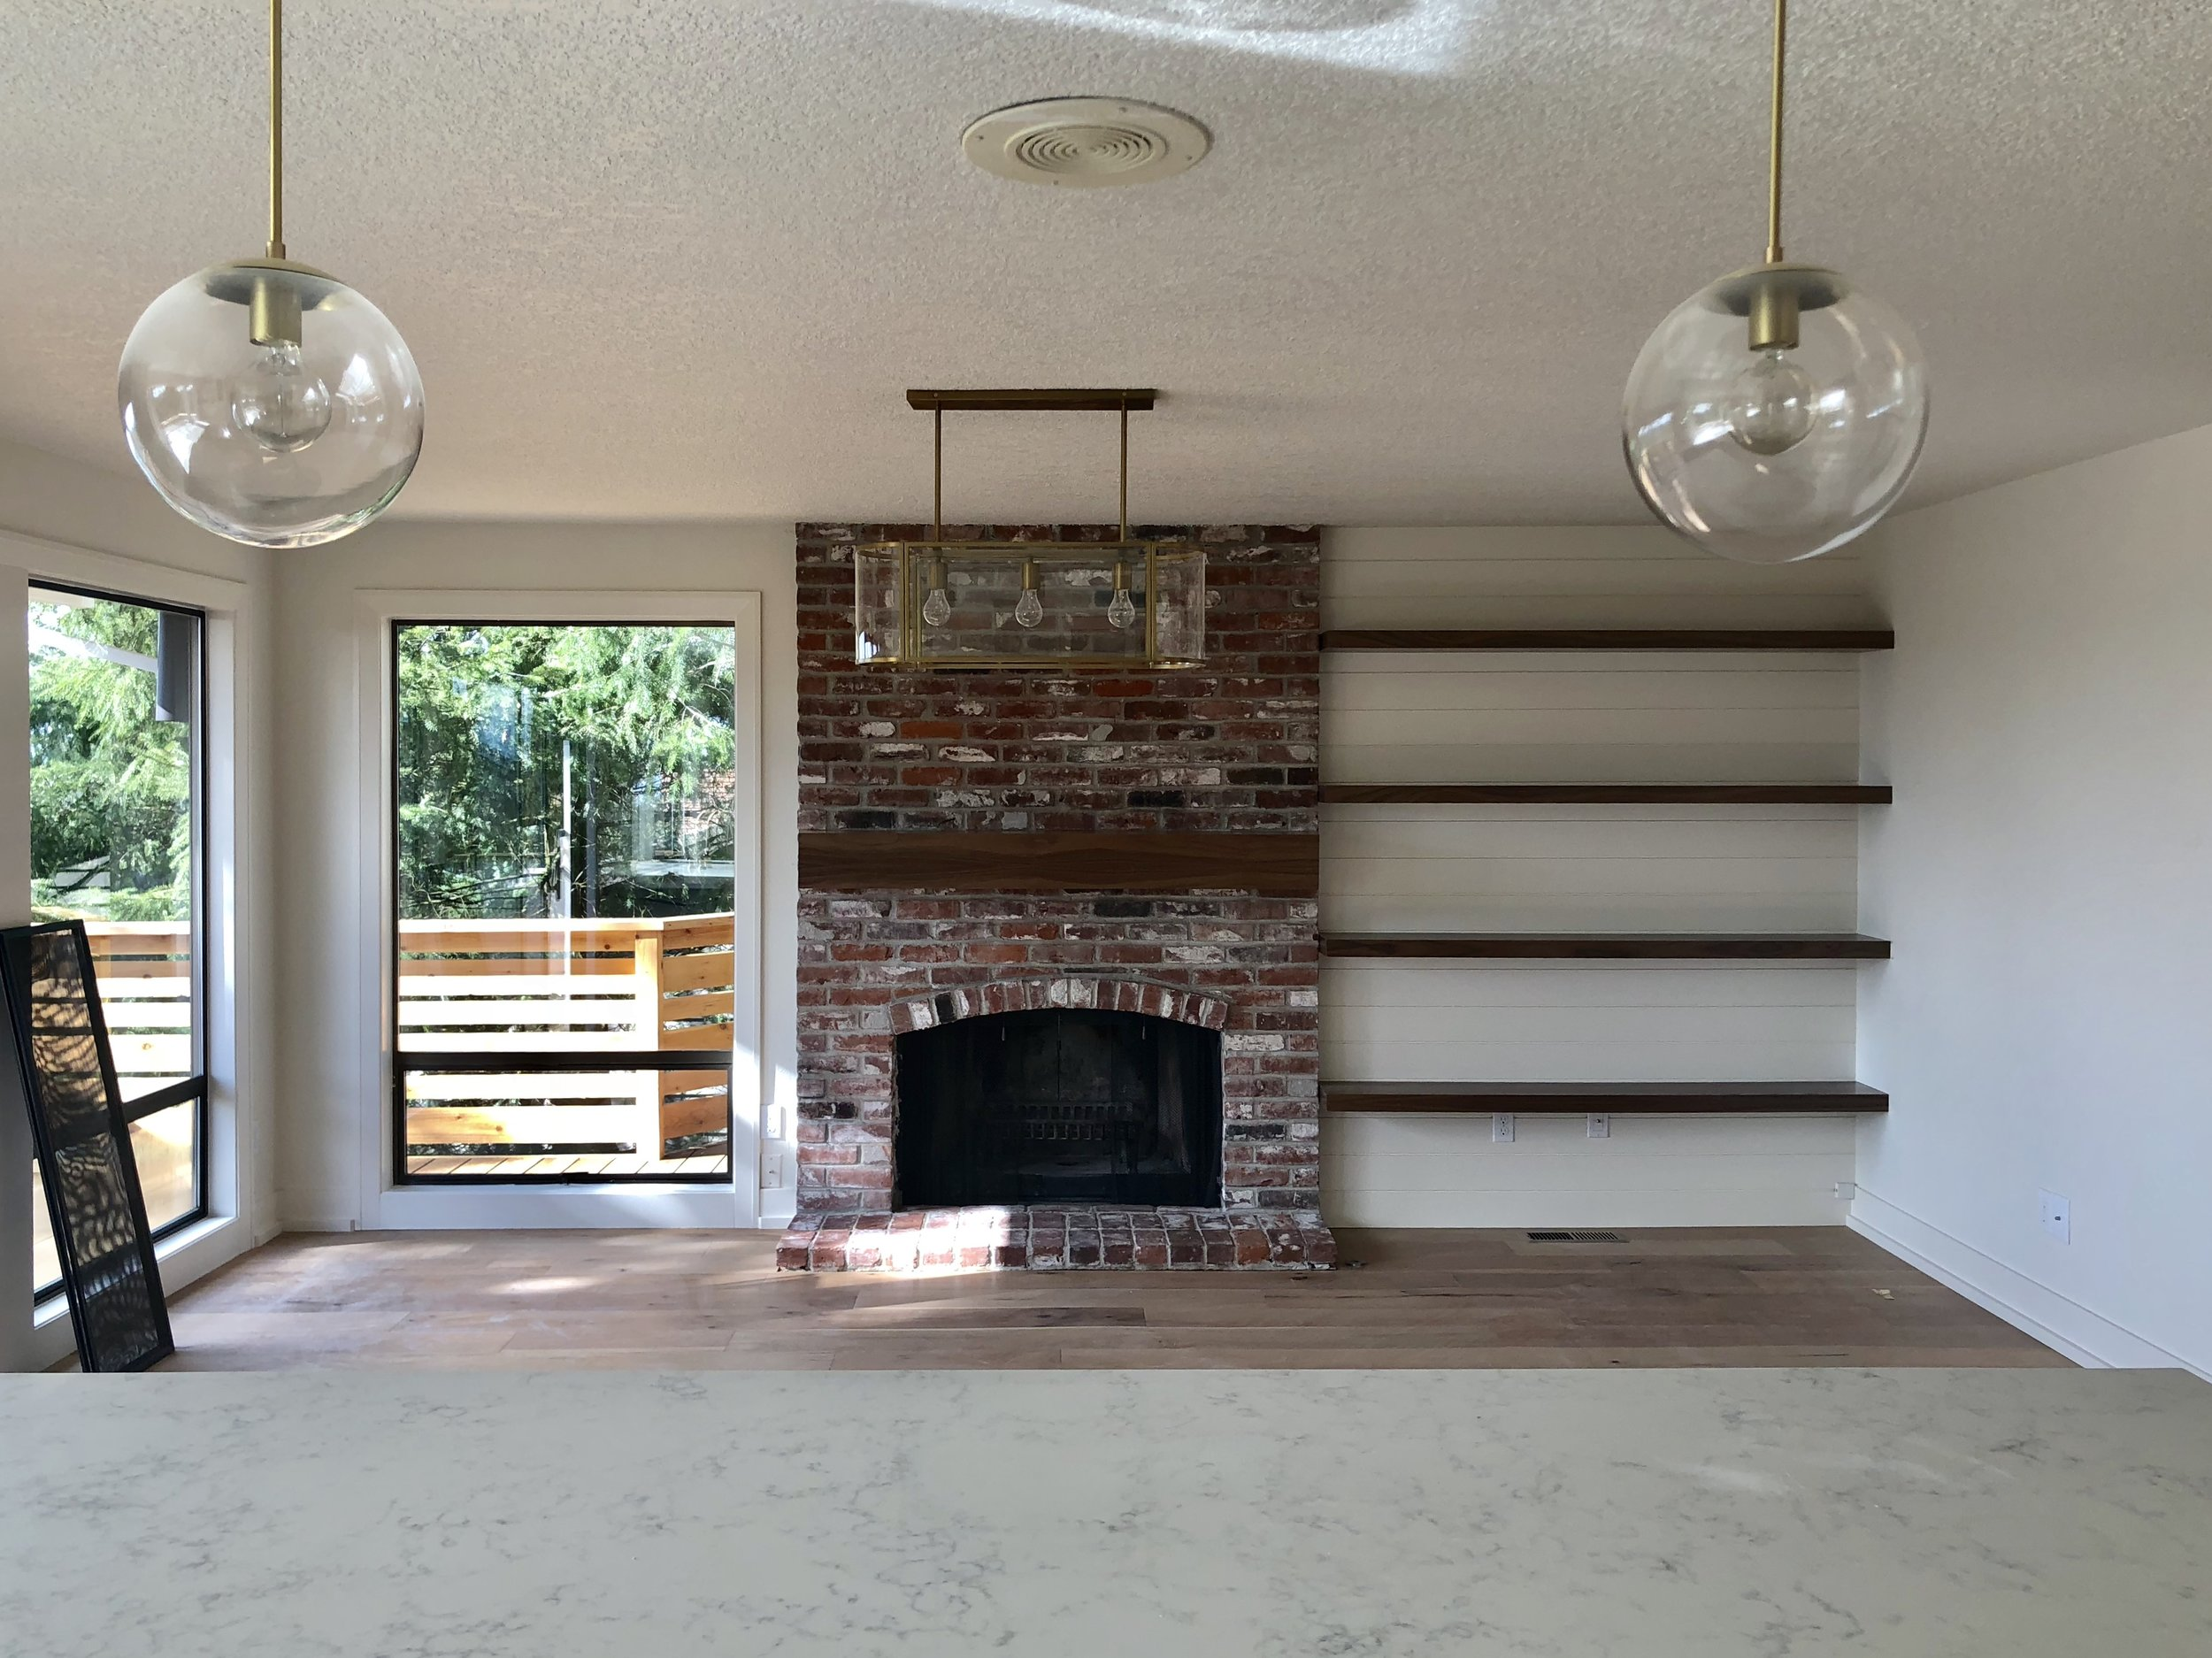 AFTER // new light fixtures, shiplap wall with floating shelves, new floors, painted fireplace